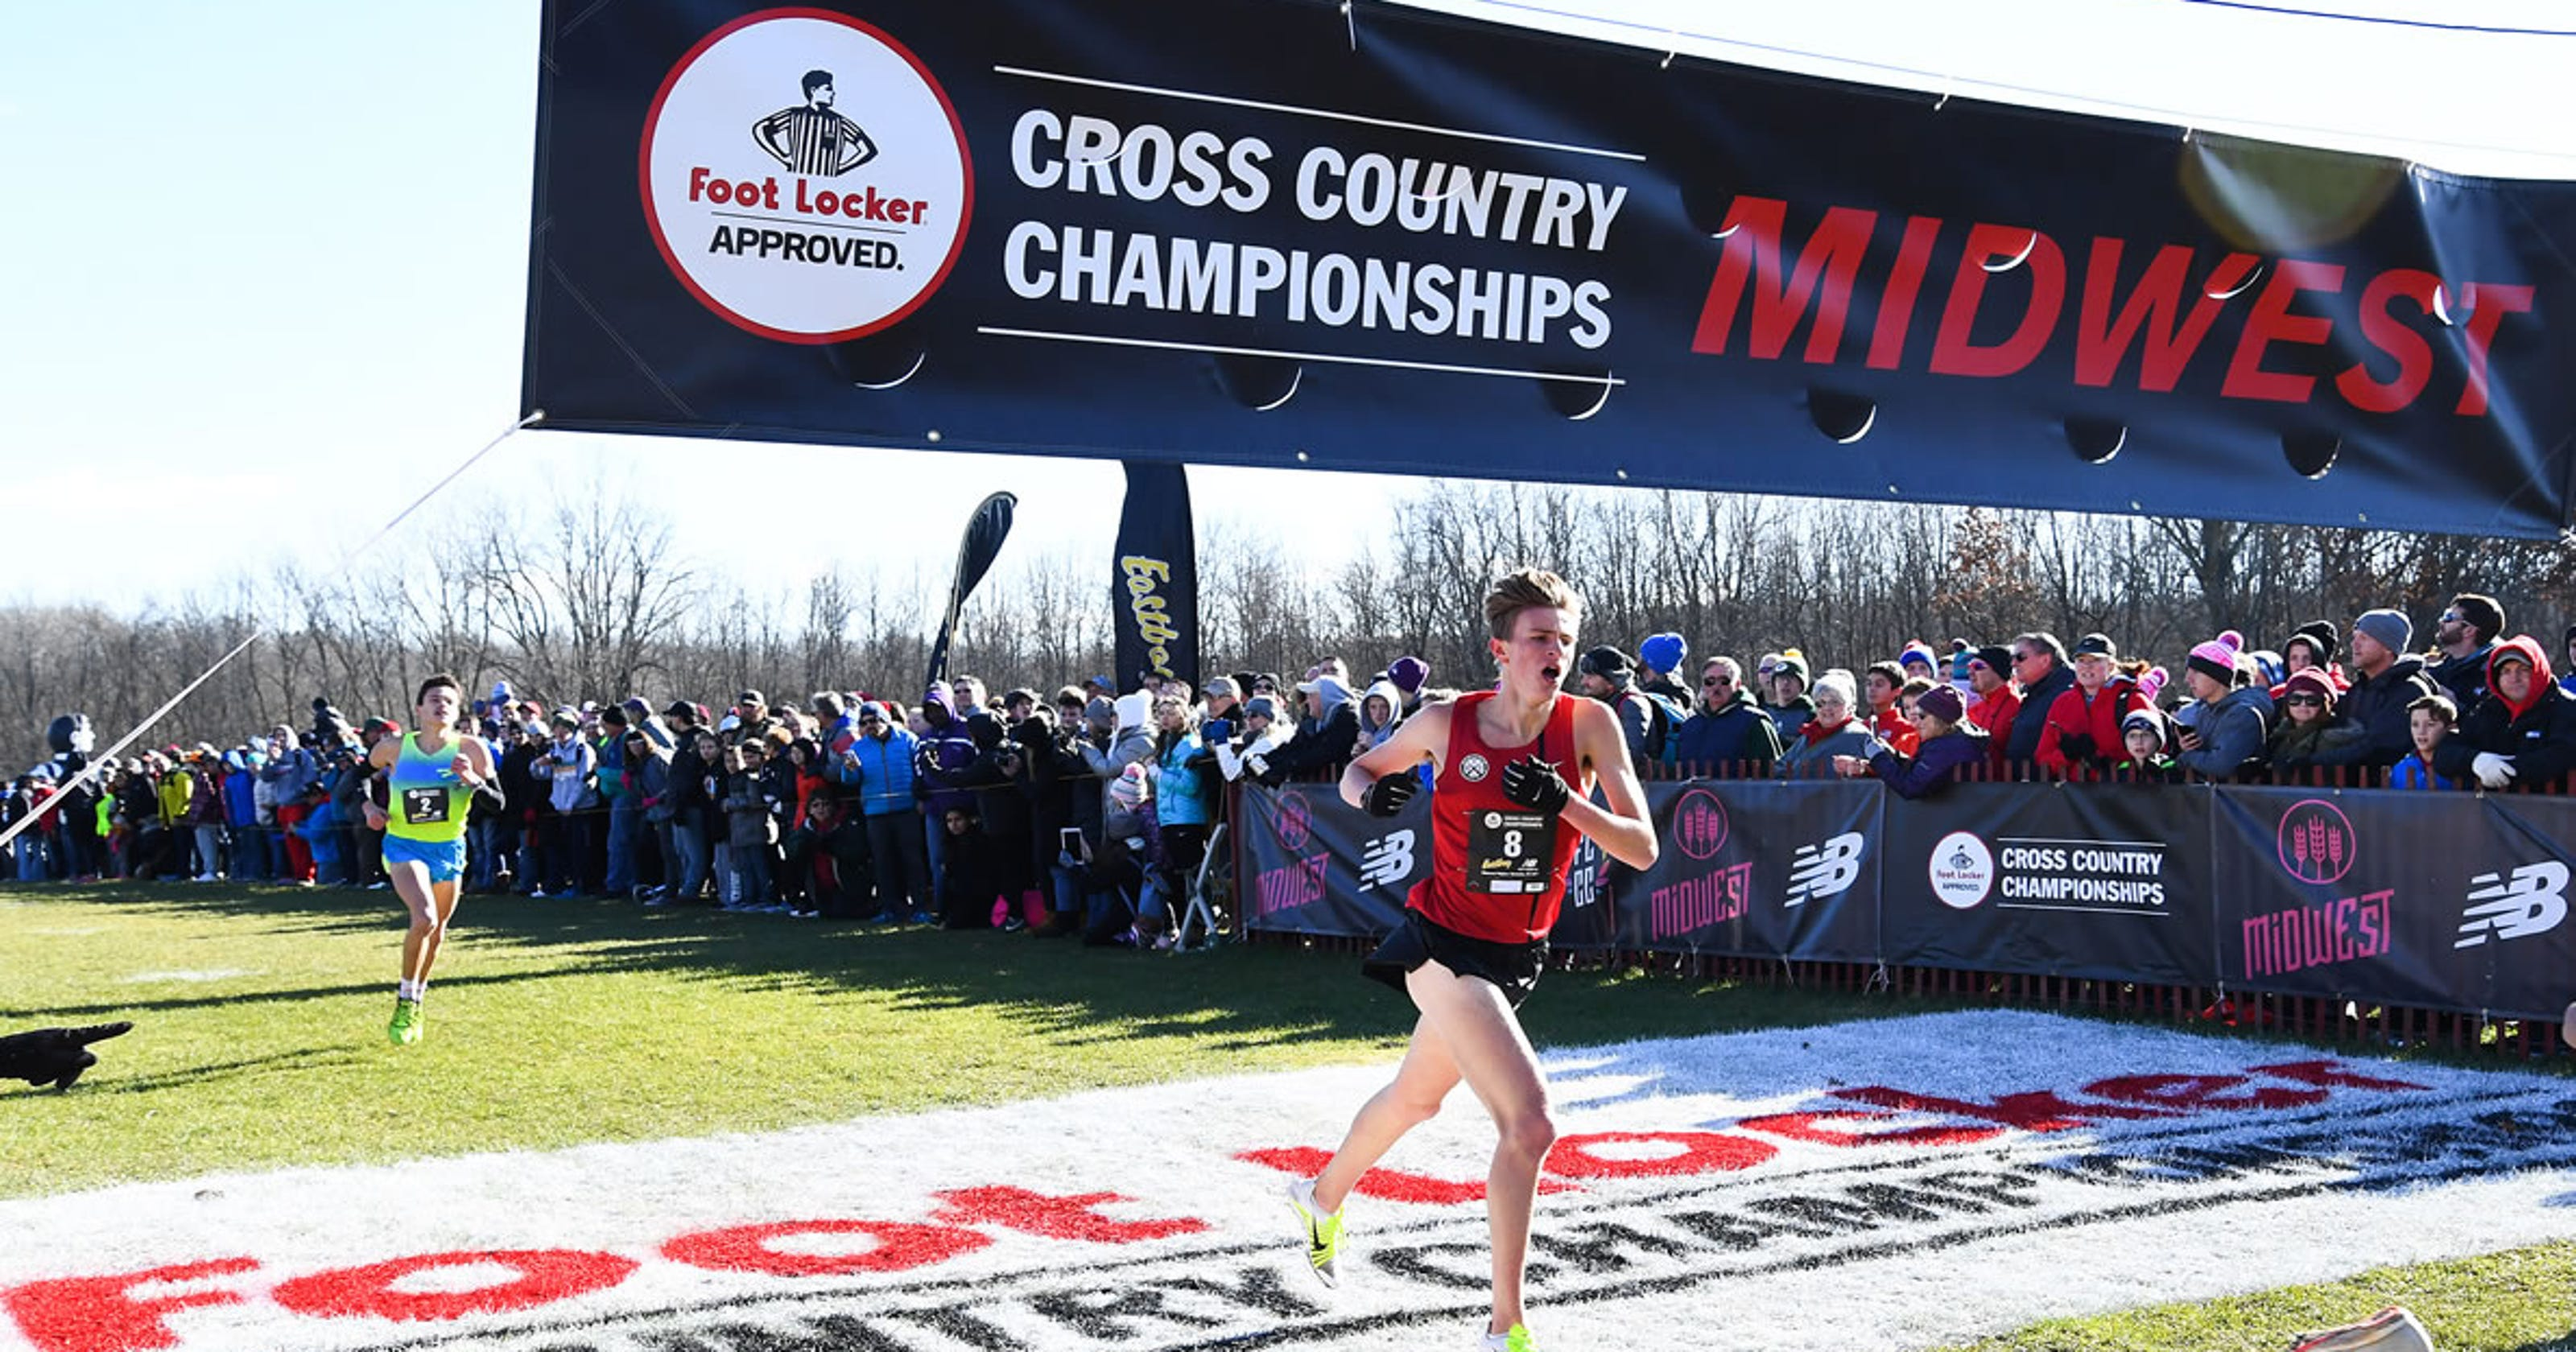 b6da9b724892f Homestead s Drew Bosley qualifies for Foot Locker Cross-Country National  Championships